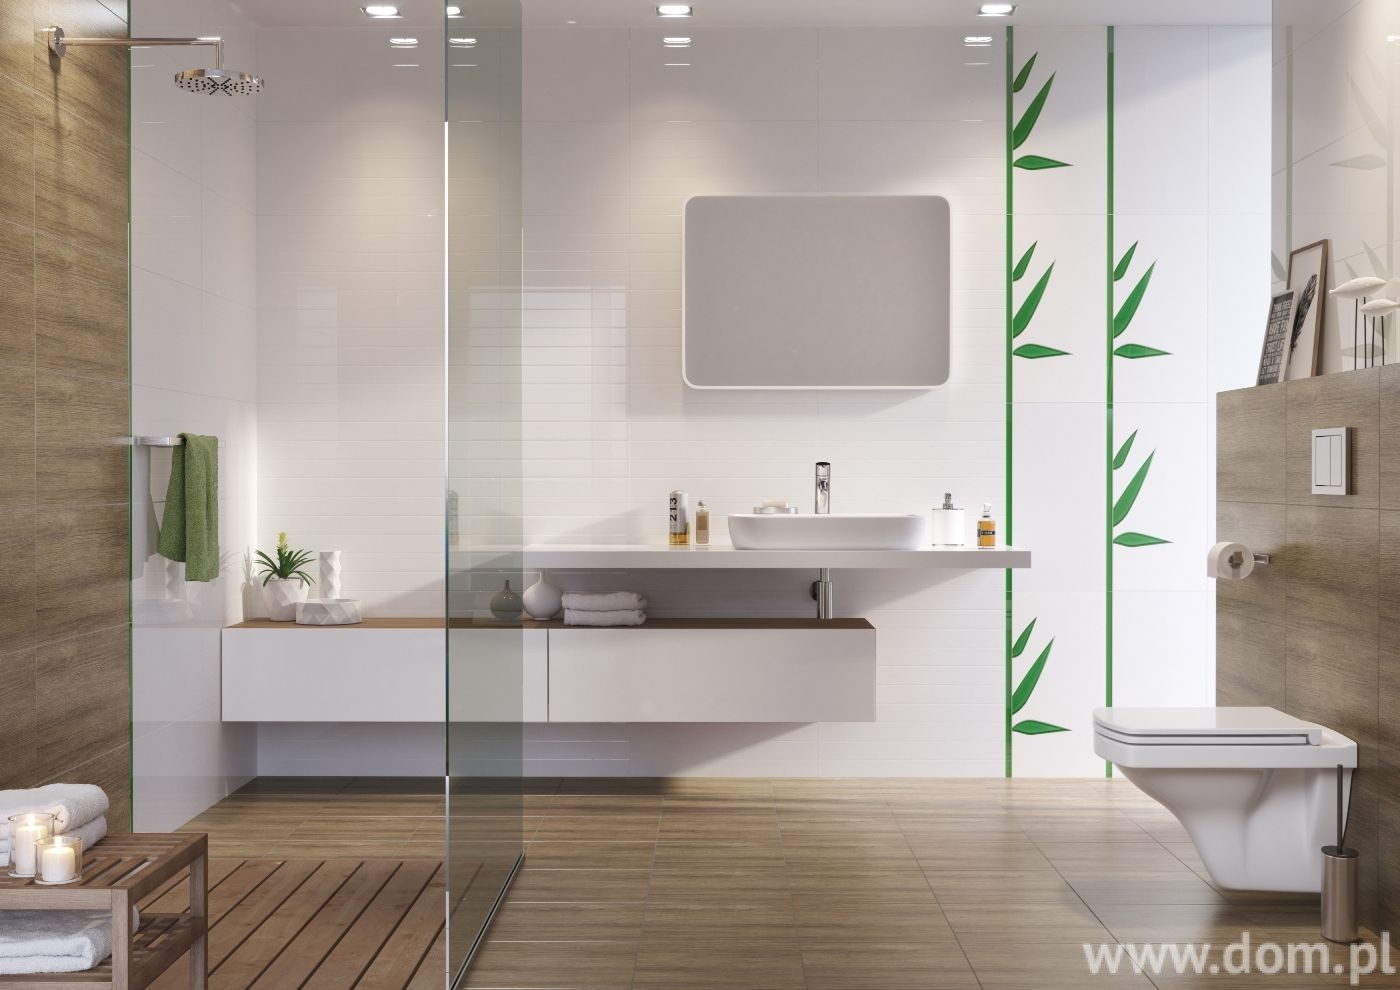 nature bathroom designs html with Biale Ply I Lazienkowe Sposob Na Ponadczasowa Lazienke on Biale Ply i Lazienkowe Sposob Na Ponadczasowa Lazienke additionally Max Studio Home Cotton Shower Curtain Quatrefoil 72 X White Blue moreover Oval Marble Vessel Sink With Chiseled Exterior 1 further 15182 Vector Wedding Floral Wreath Clip Art Hand Illustrated Digital Flowers Flower Frames Wedding Invitation Shower Invitation Frame likewise Be Kind Wall Quote Decal.